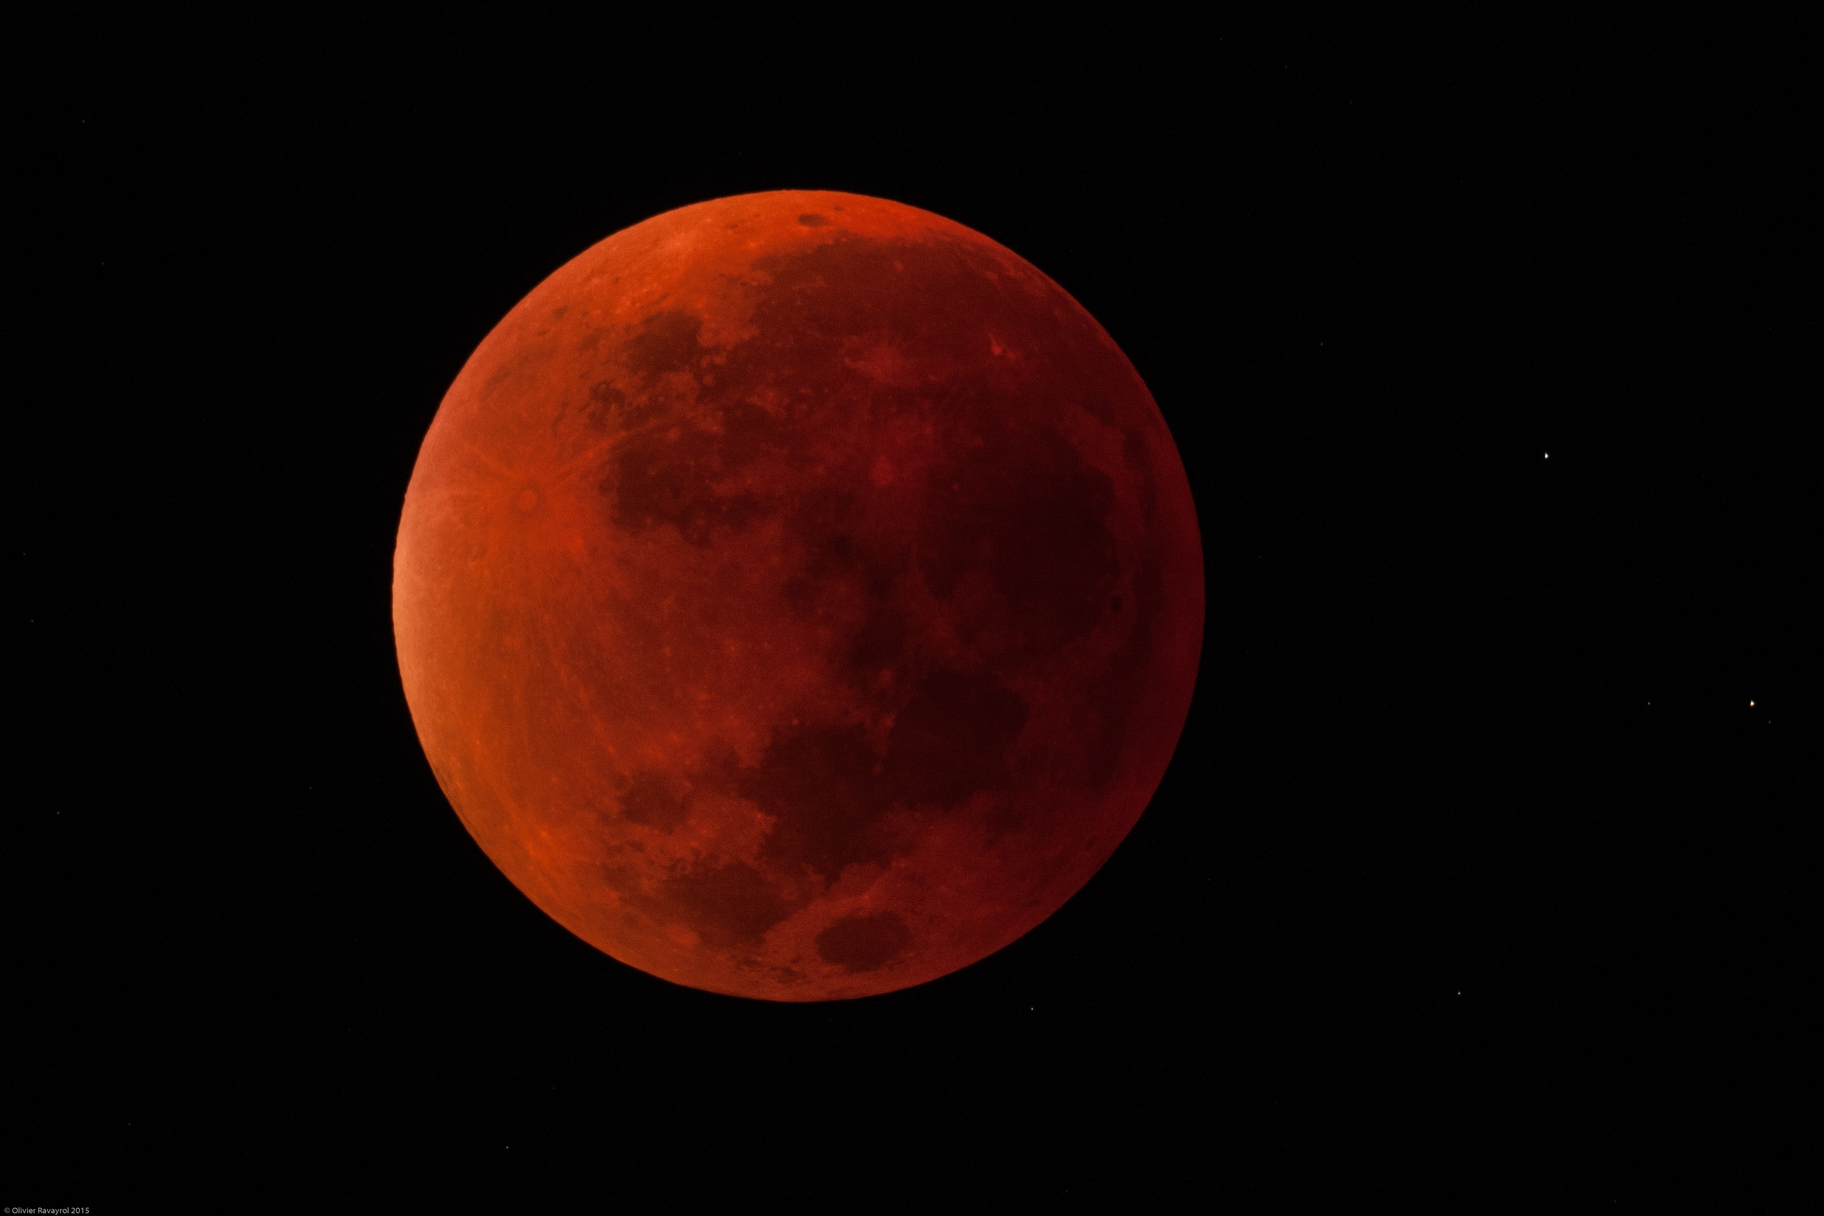 Supermoon Lunar Eclipse 2015 (totality phase),                                Olivier Ravayrol